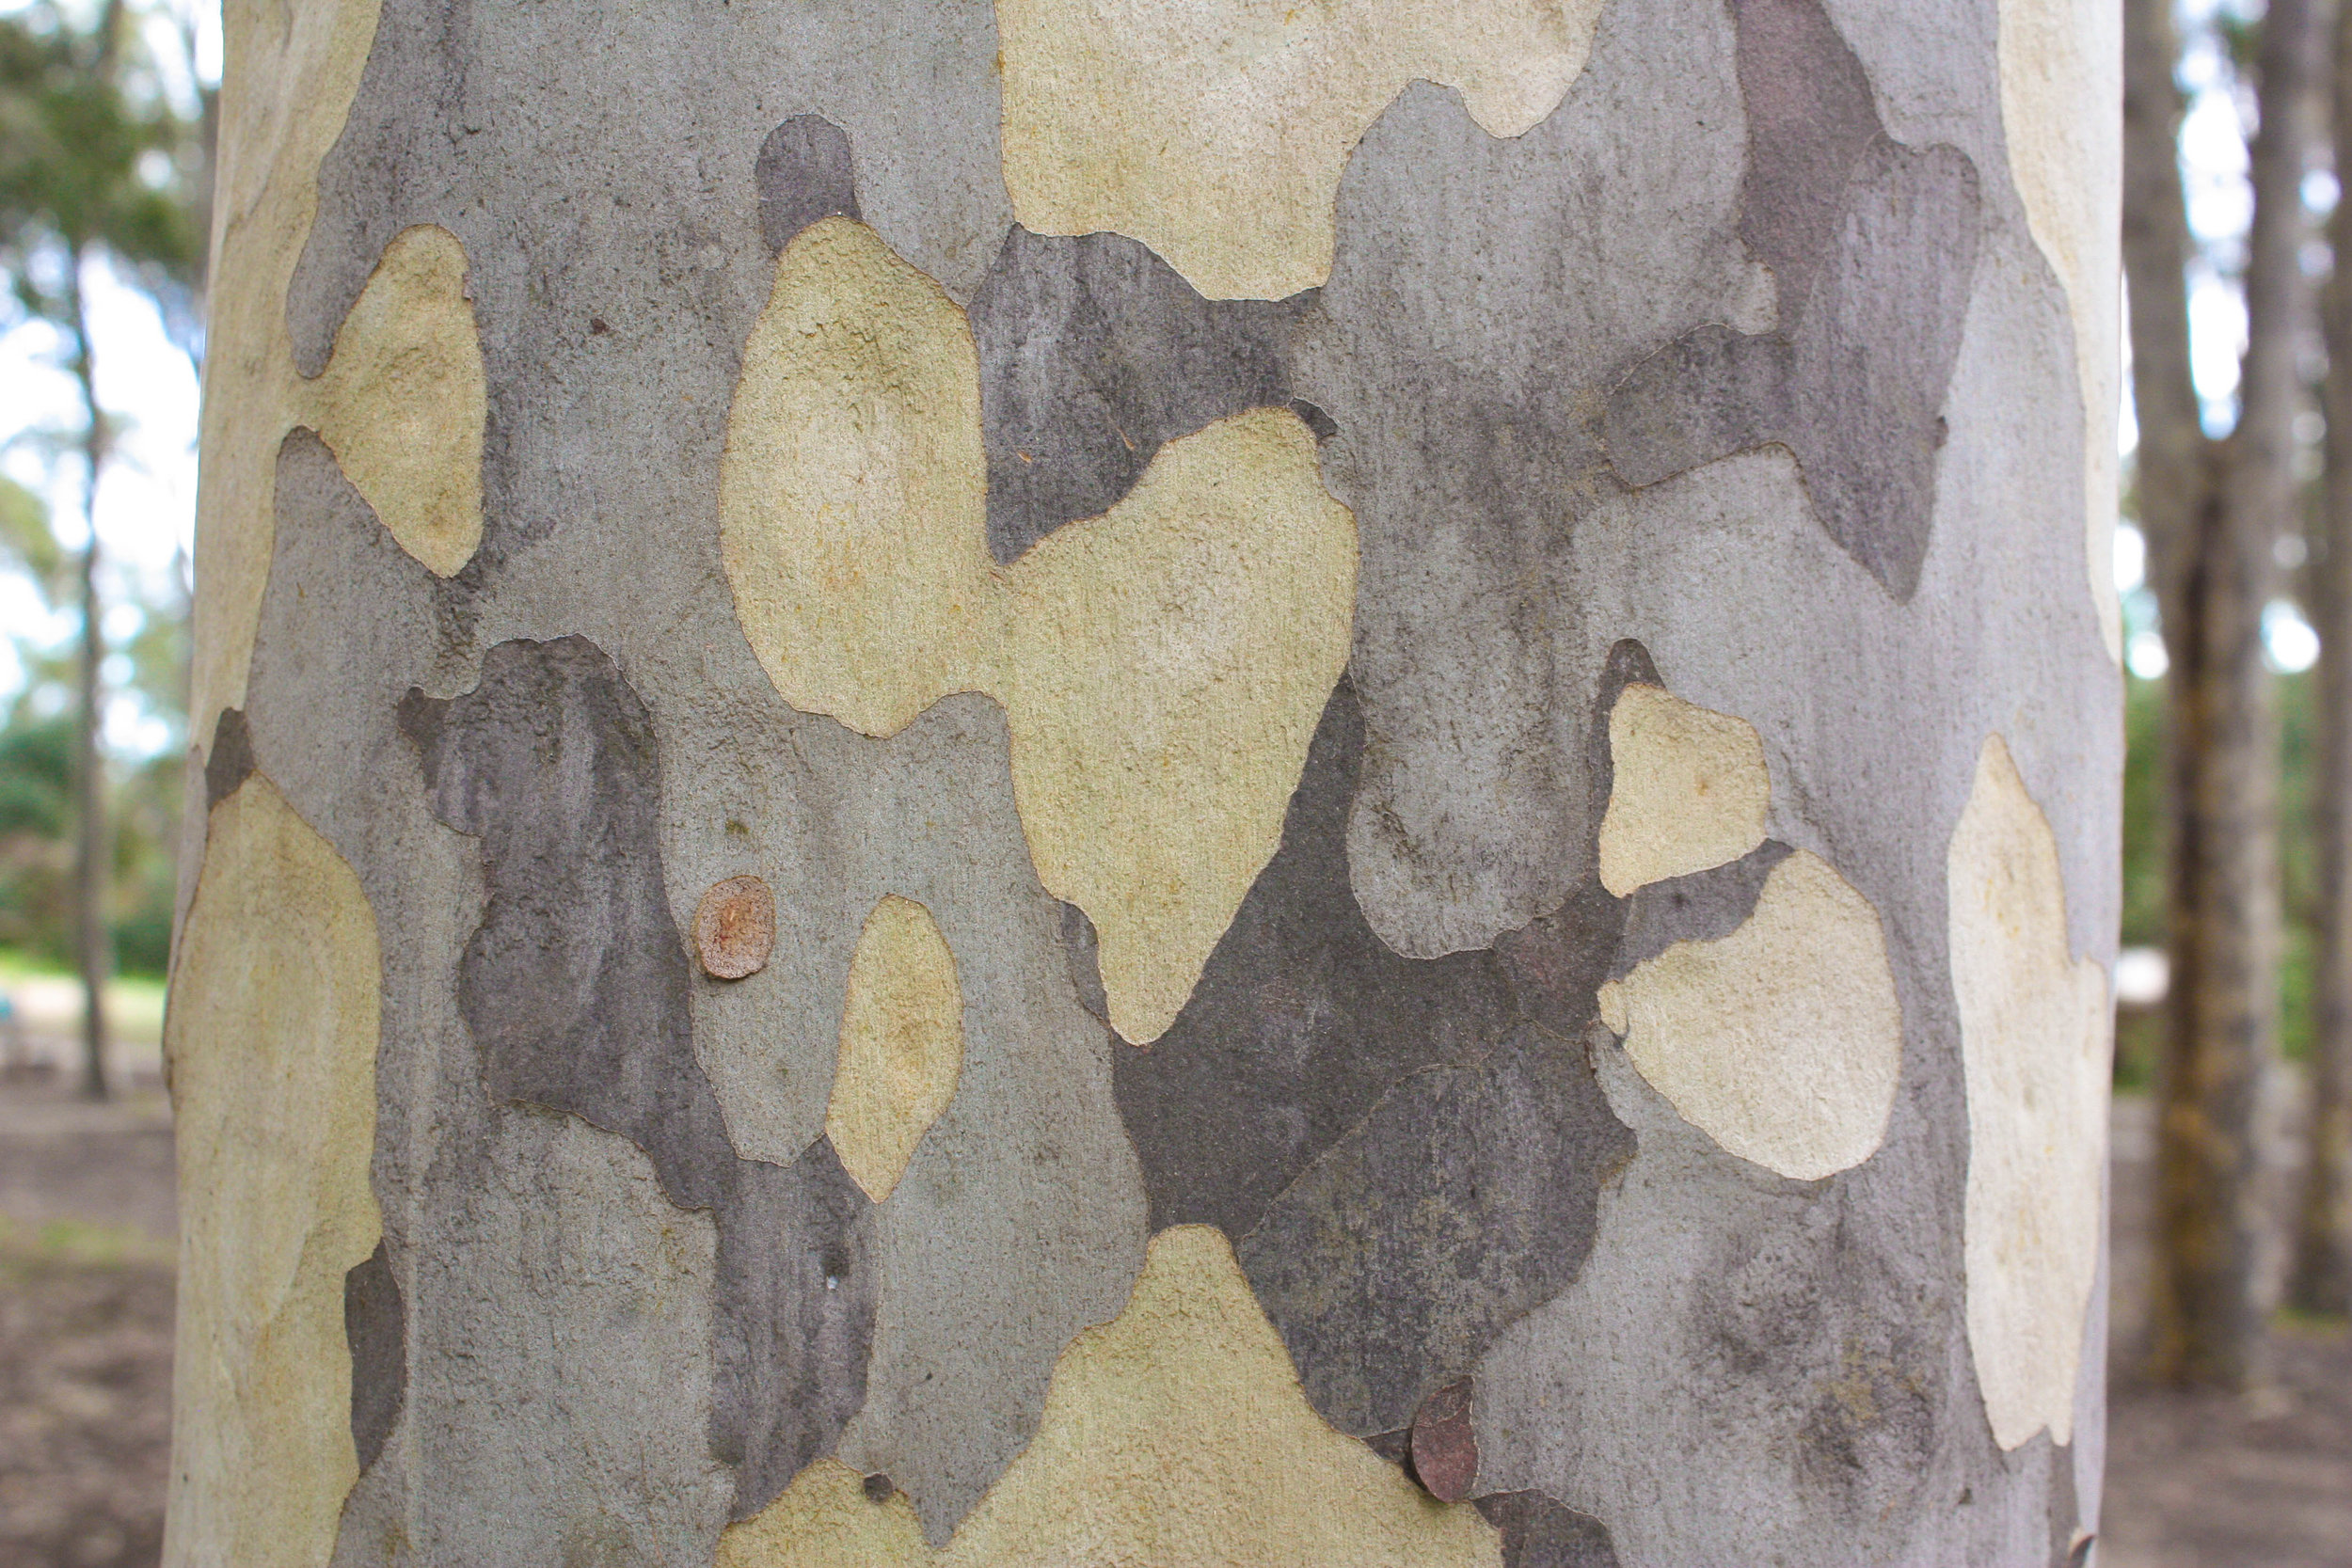 Reading about a tree is not the same as feeling its bark with our own hands.  Image: Alex Mullarky